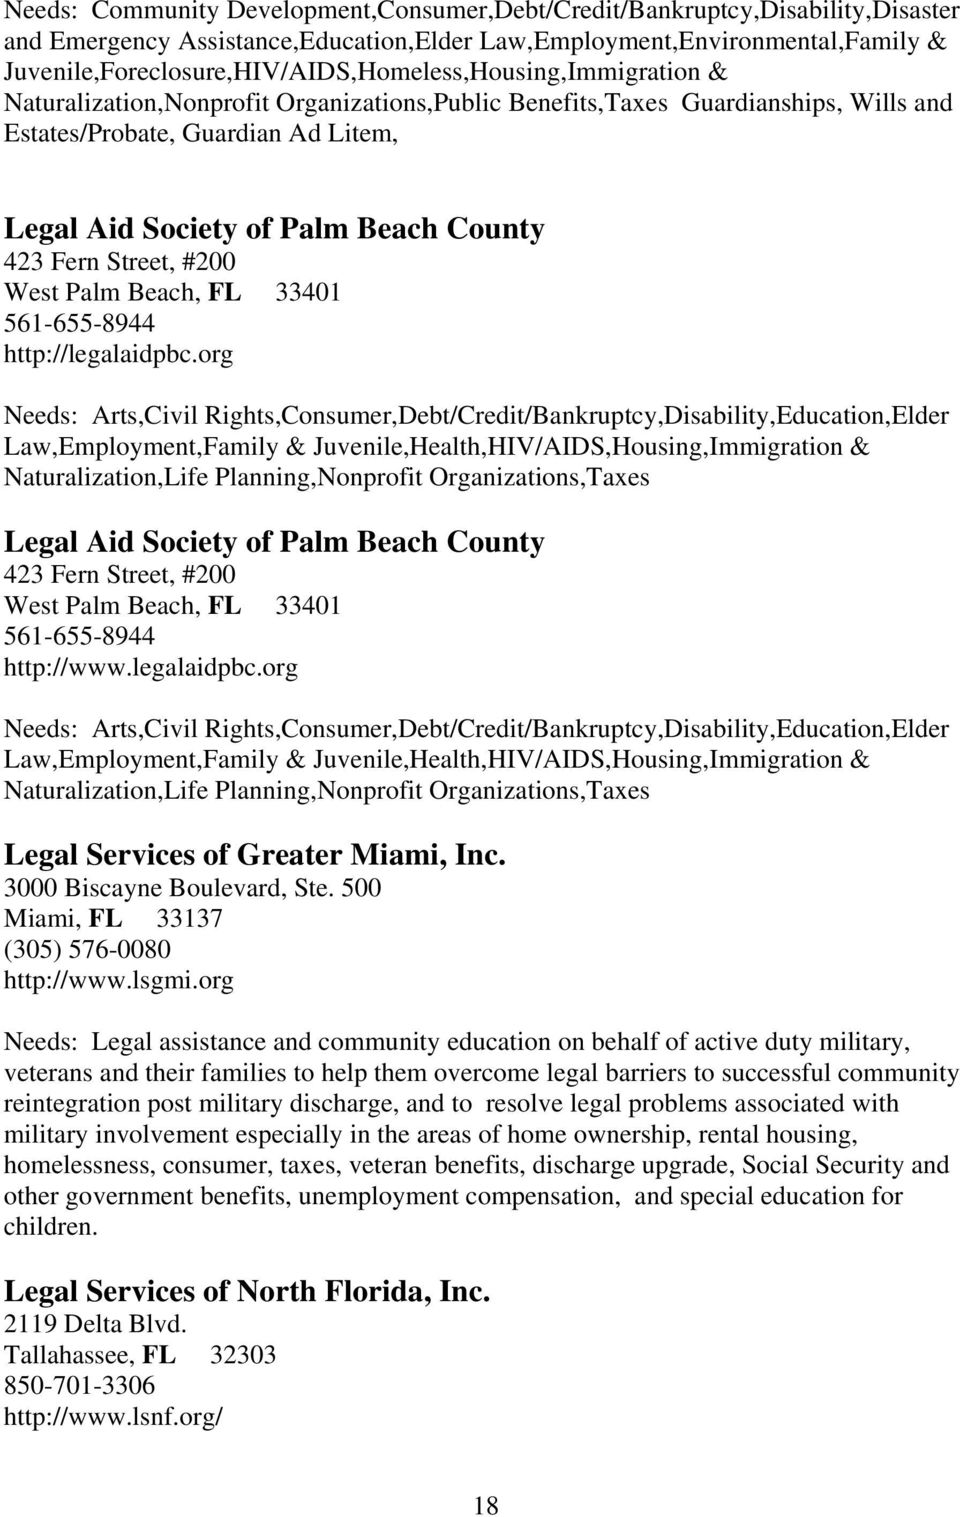 Society of Palm Beach County 423 Fern Street, #200 West Palm Beach, FL 33401 561-655-8944 http://legalaidpbc.